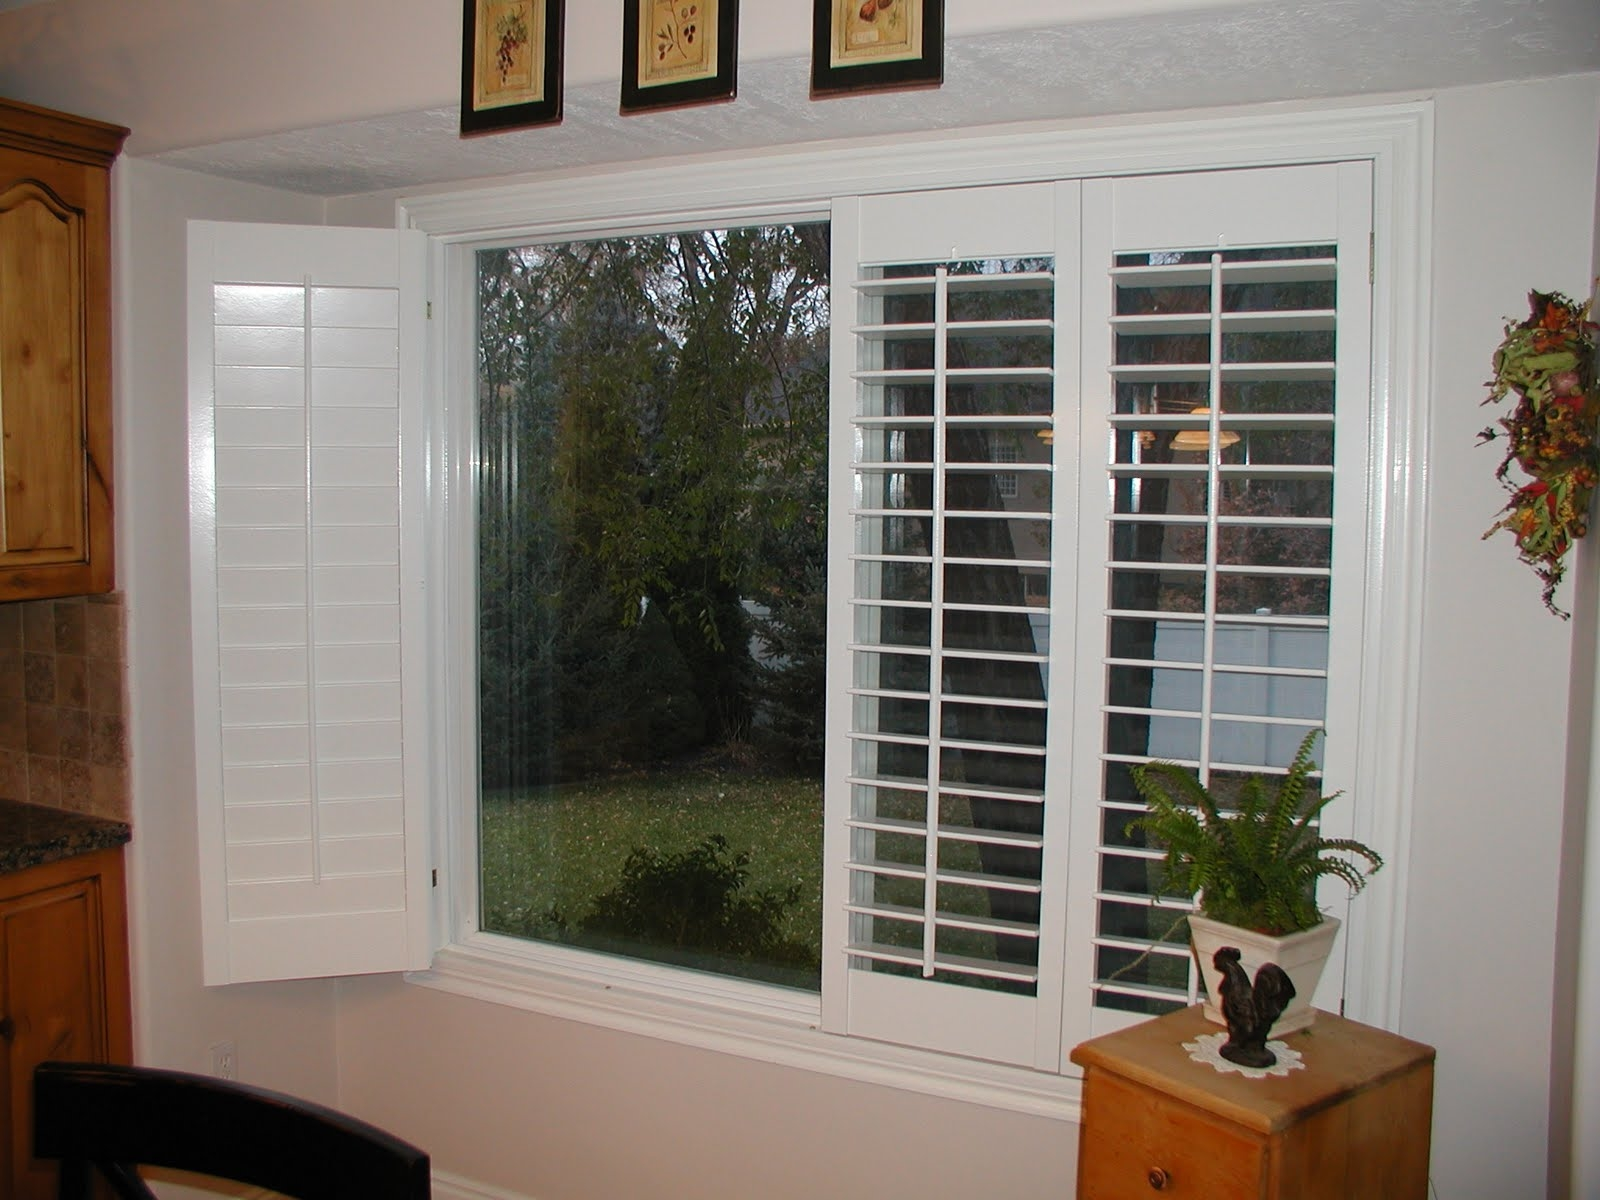 Plantation Shutters For Double Sliding DoorsPlantation Shutters For Double Sliding Doors